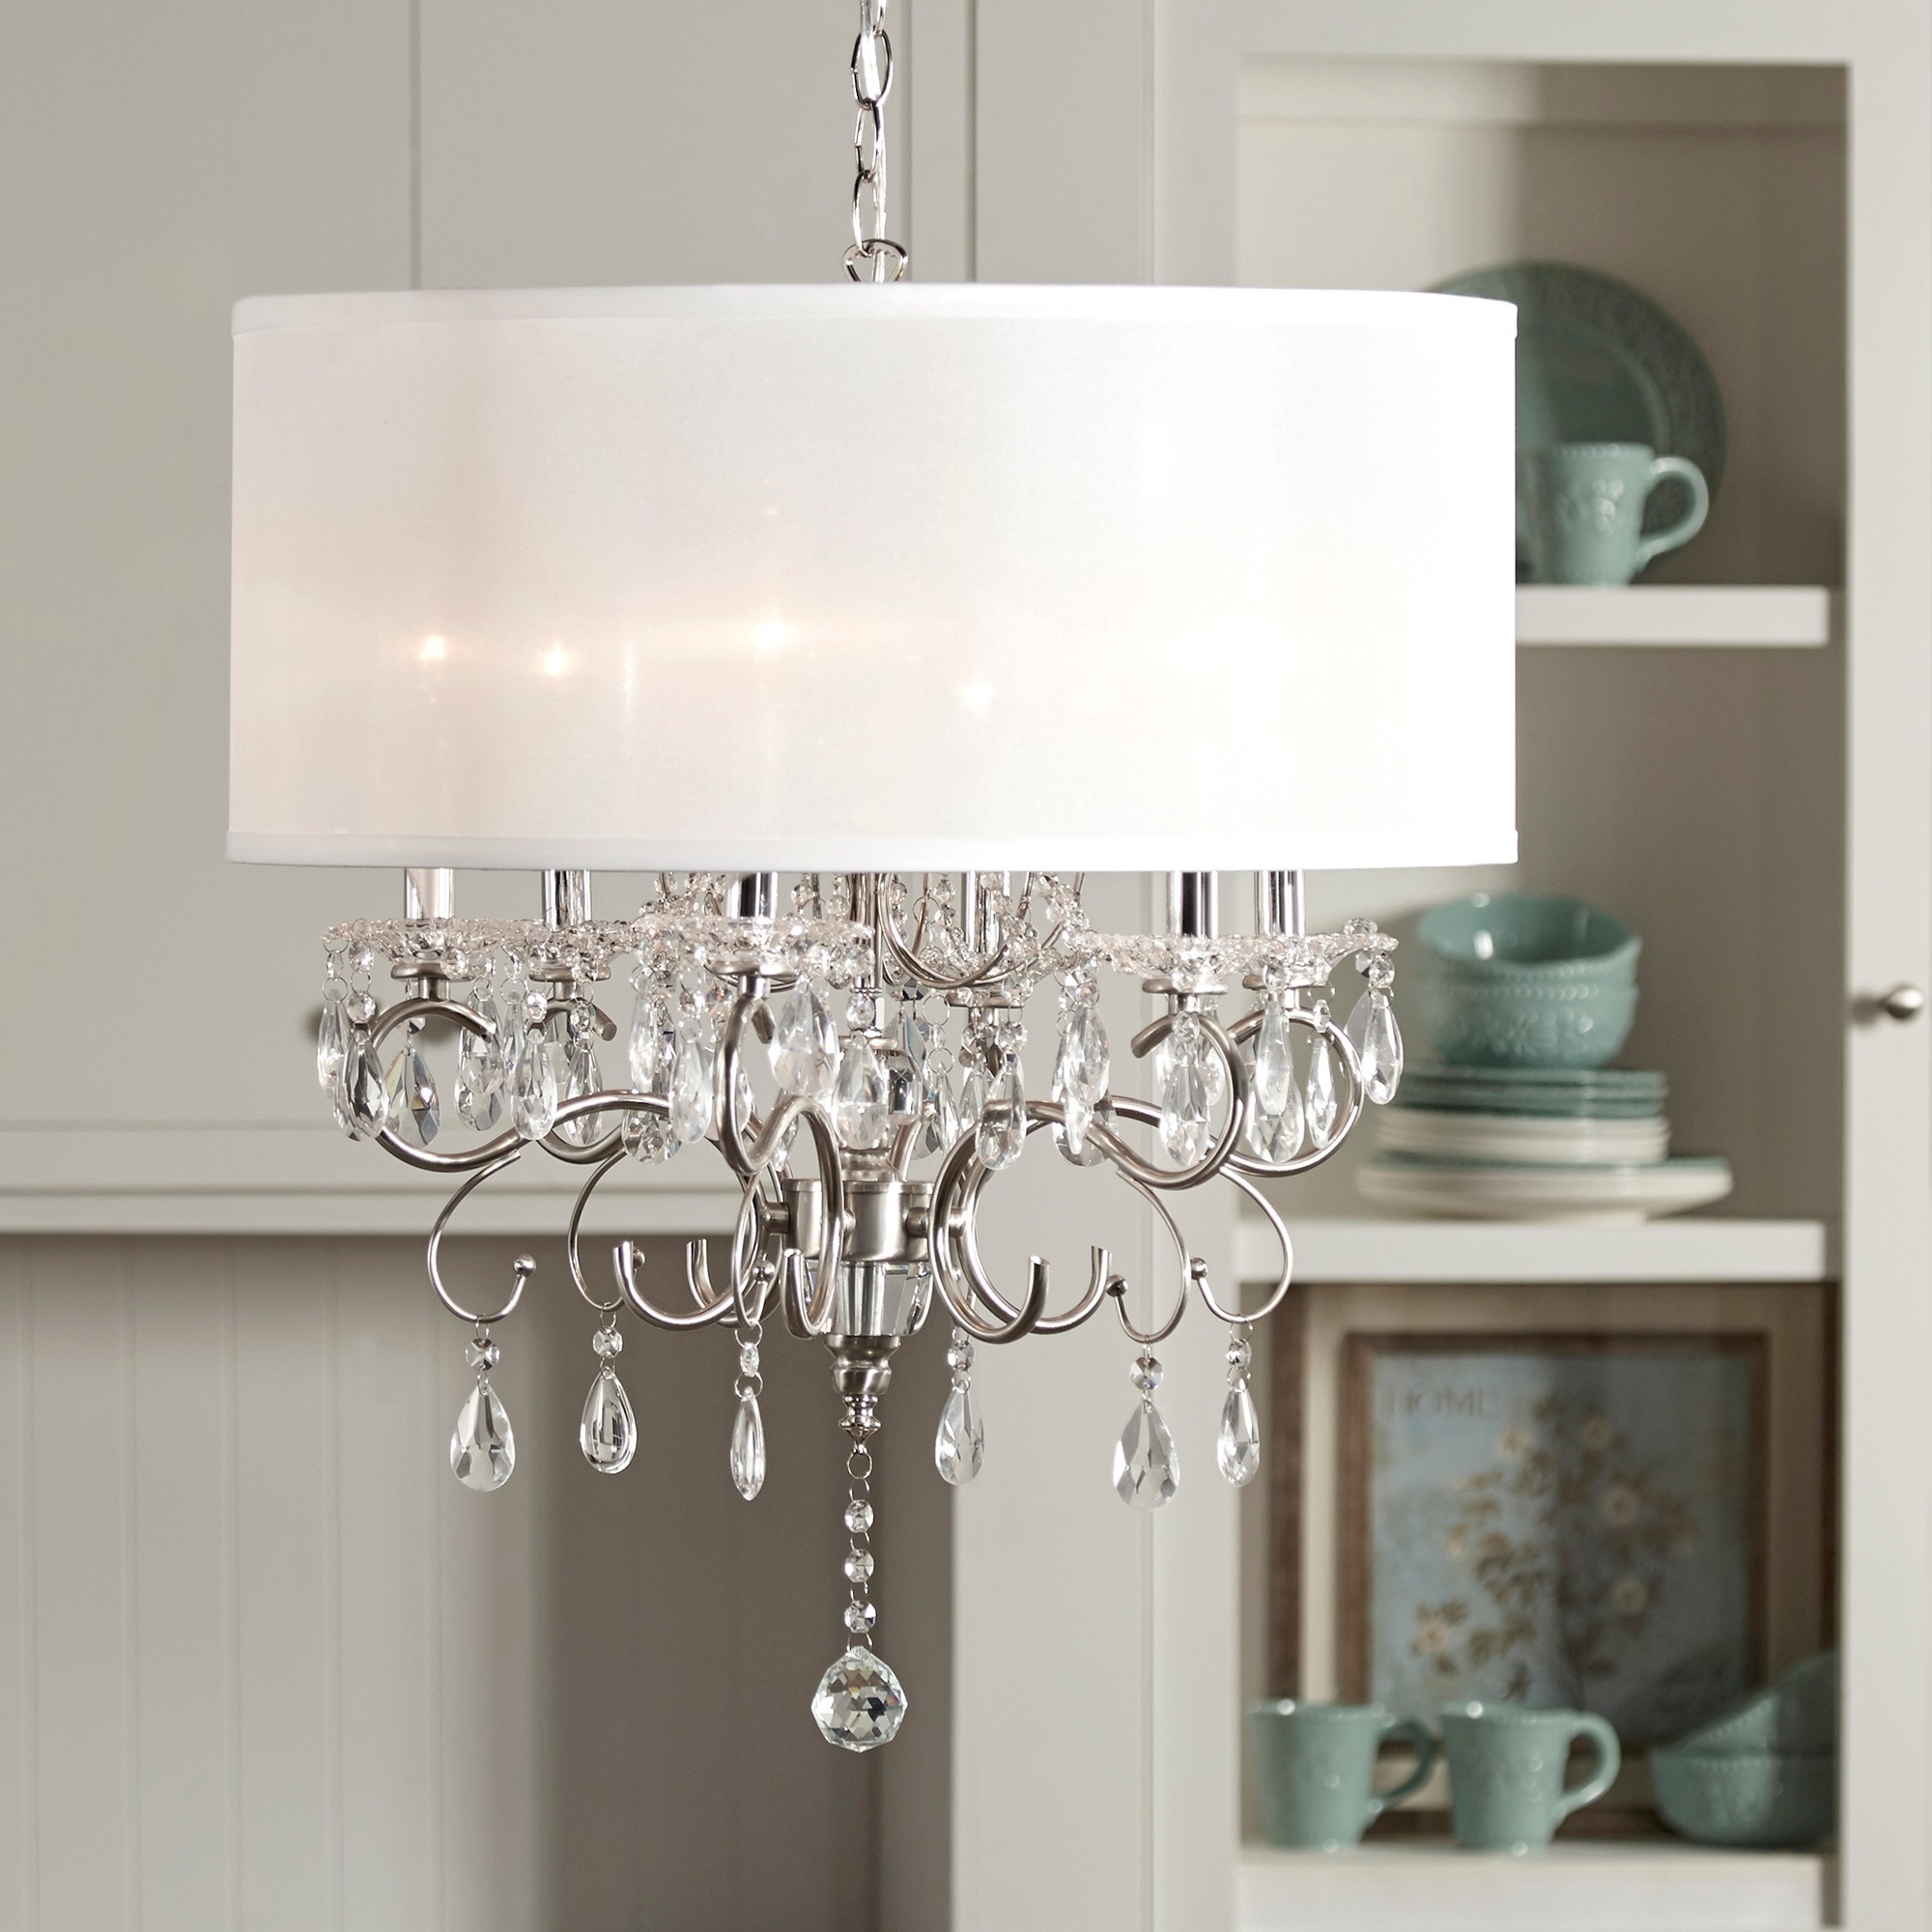 Light Chandeliers For Bedroom Chandelier Light Fixture Outdoor Intended For Bathroom Lighting With Matching Chandeliers (Image 15 of 25)